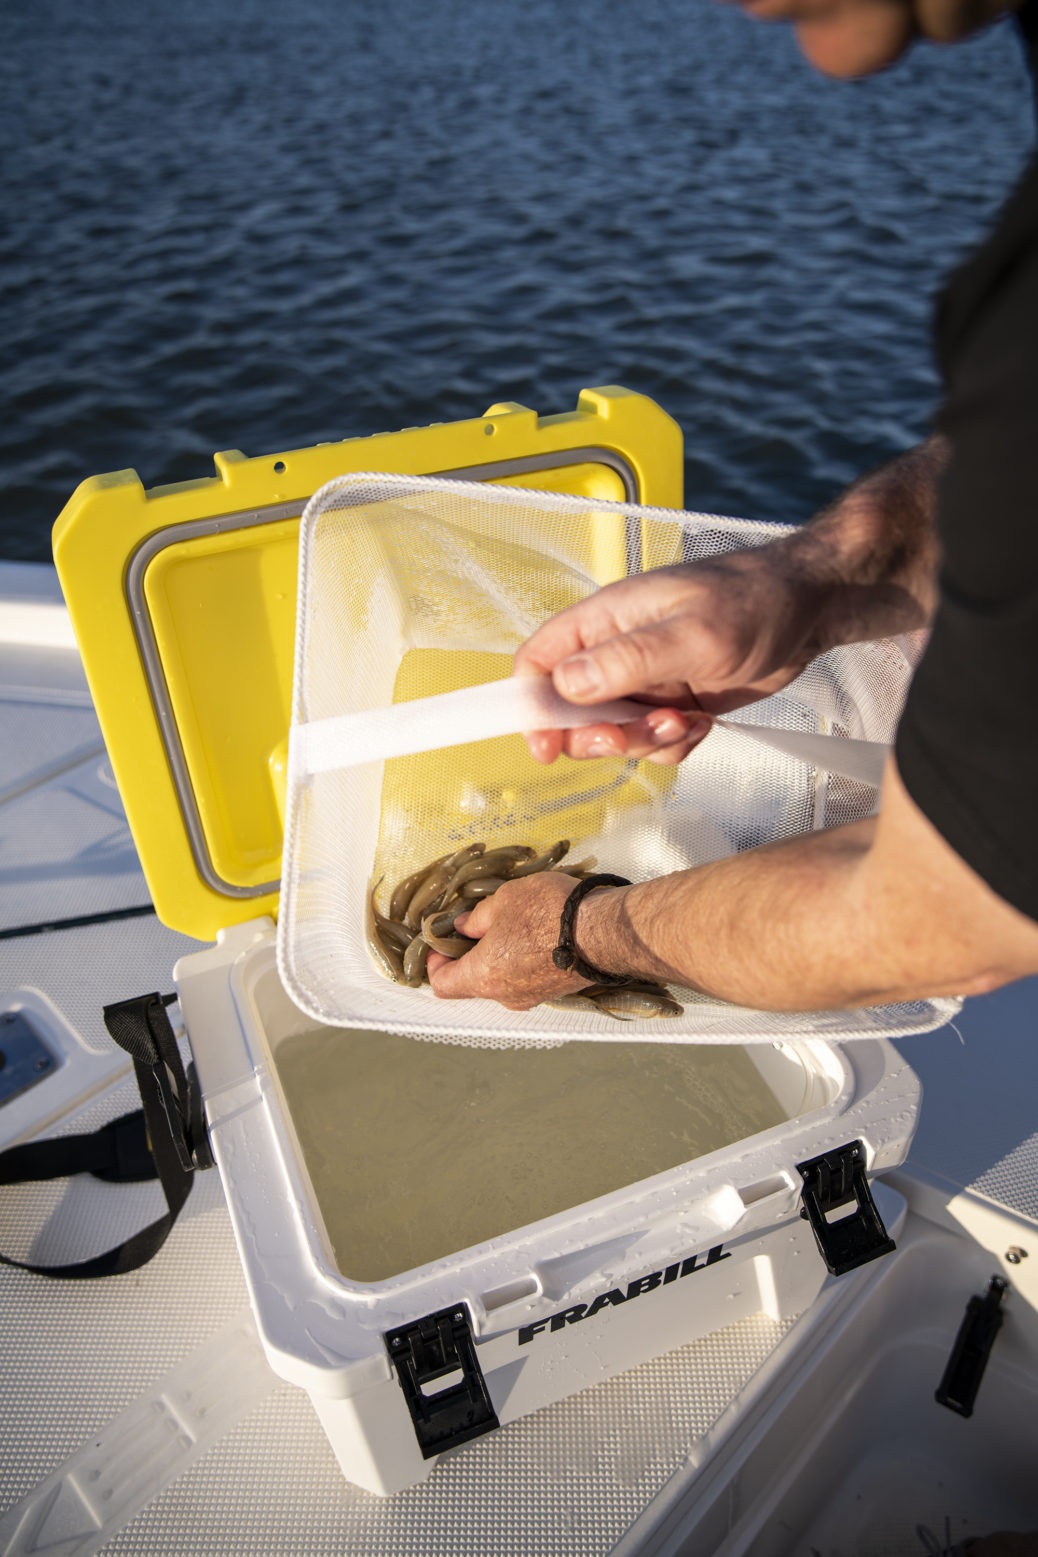 The Magnum Bait Station will keep your bait cool and aerated to ensure it has the maximum fish attraction when you need it most.